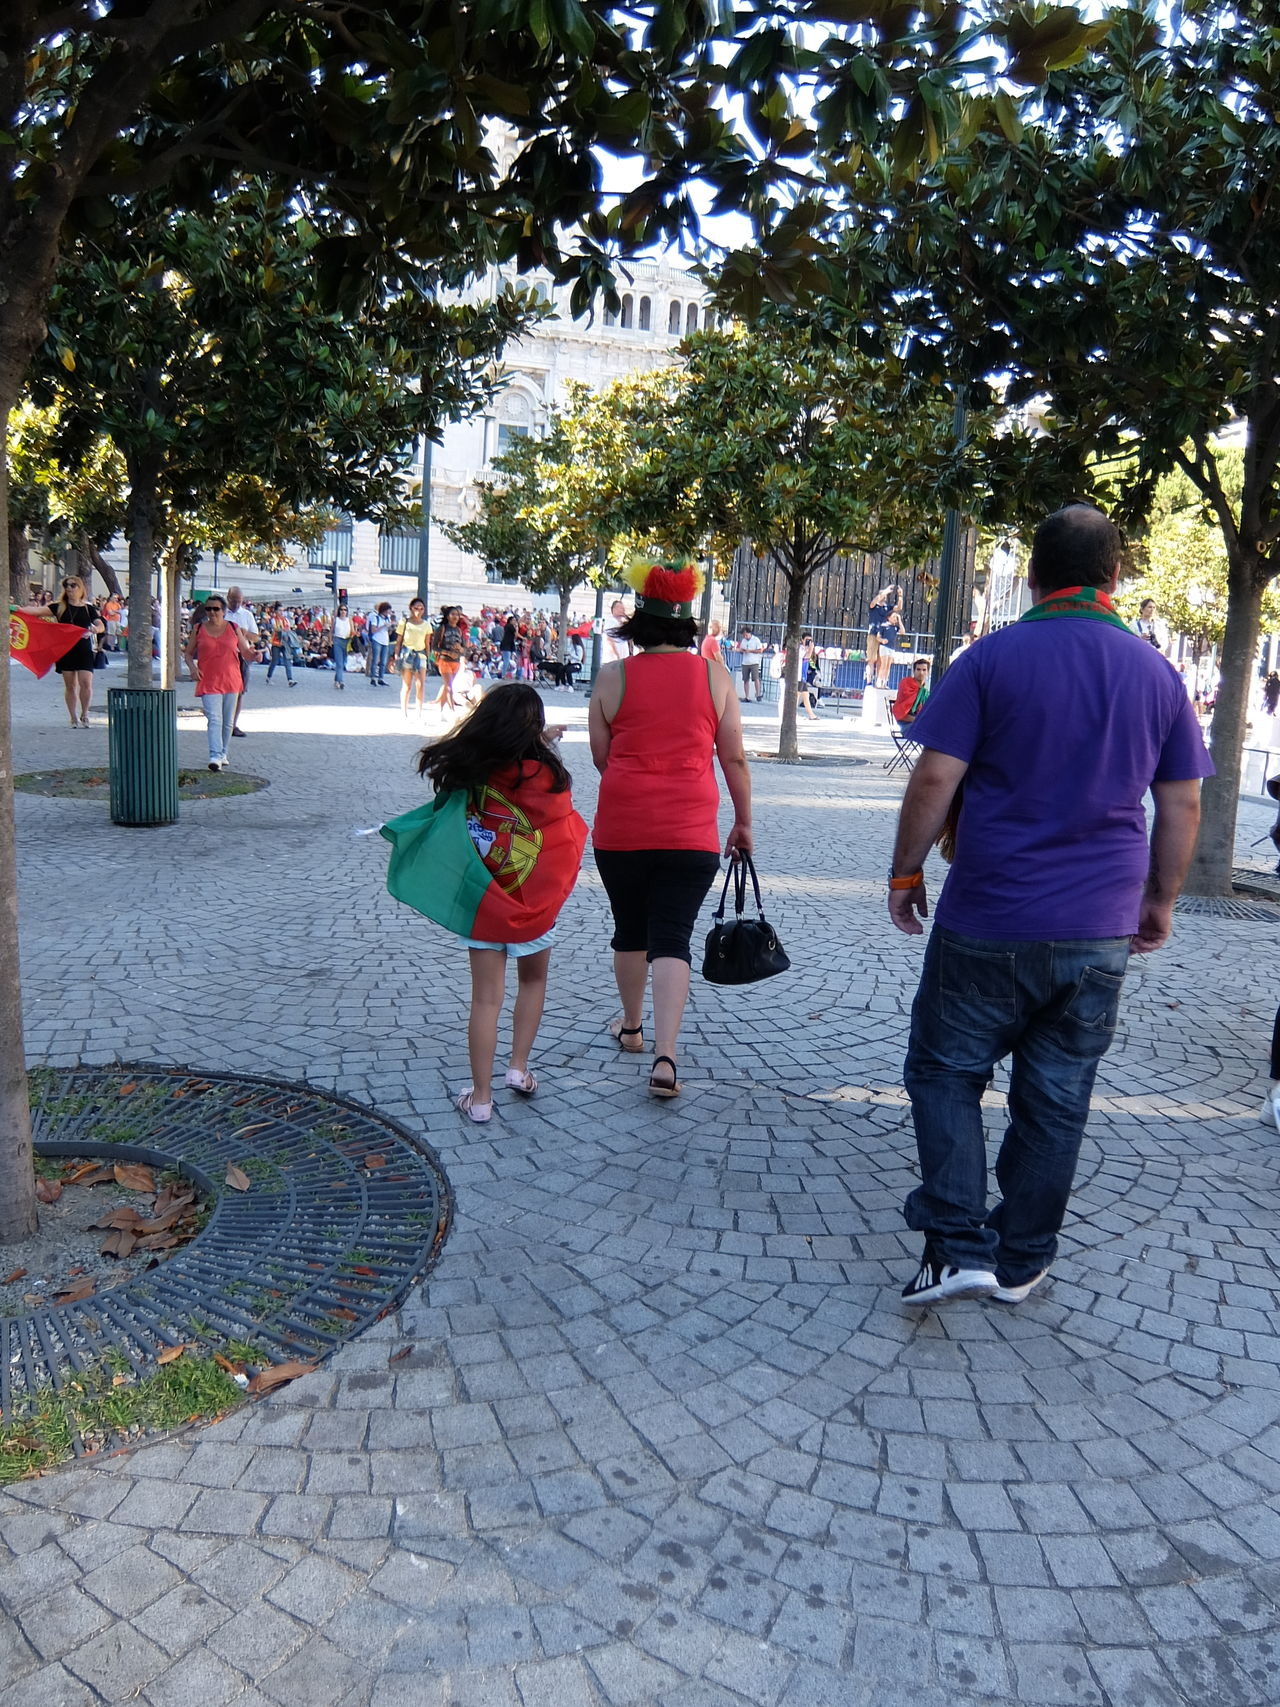 City Life Clothing Euro 2016 Flag Green & Red Leisure Activity Lifestyles Outdoors Porto Portugal The Way Forward Tree Walkway People Together